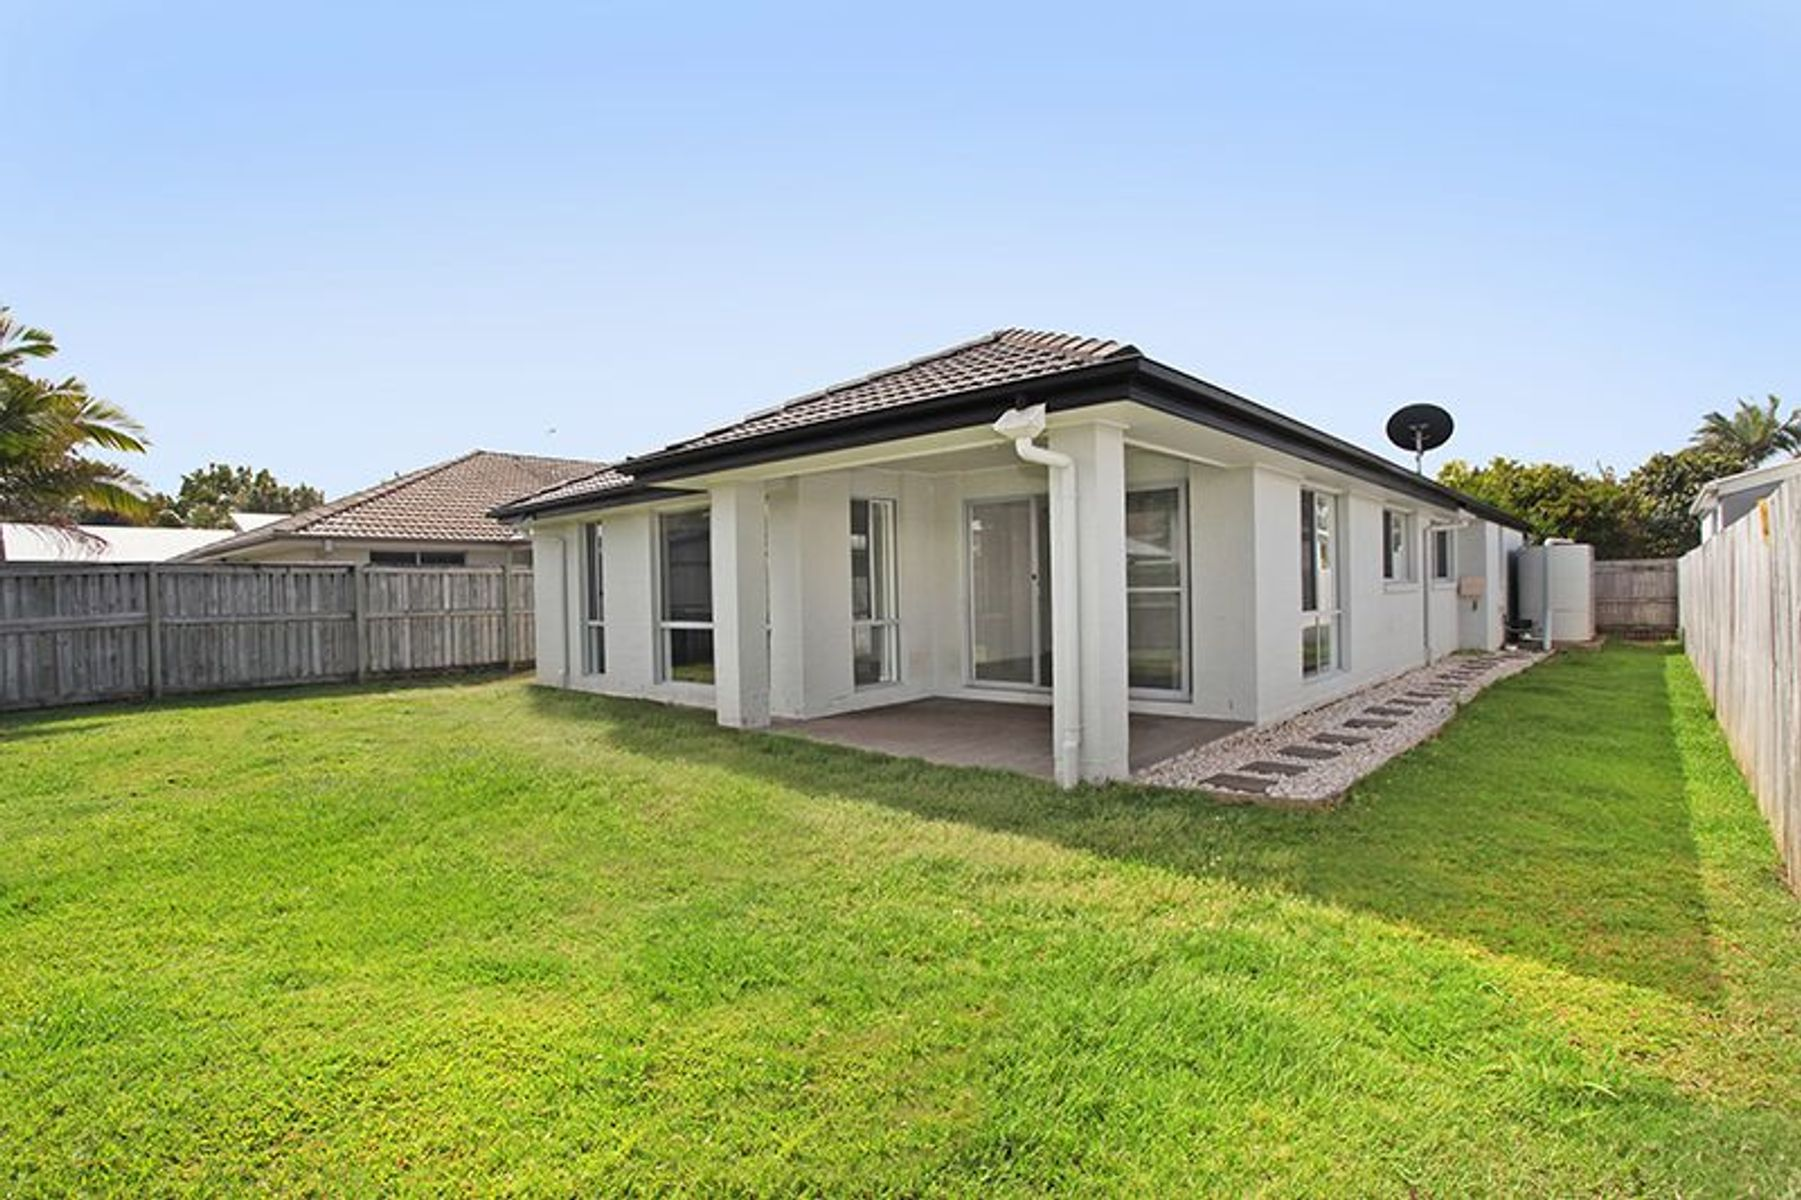 11 Peppermint Cres, Sippy Downs, QLD 4556